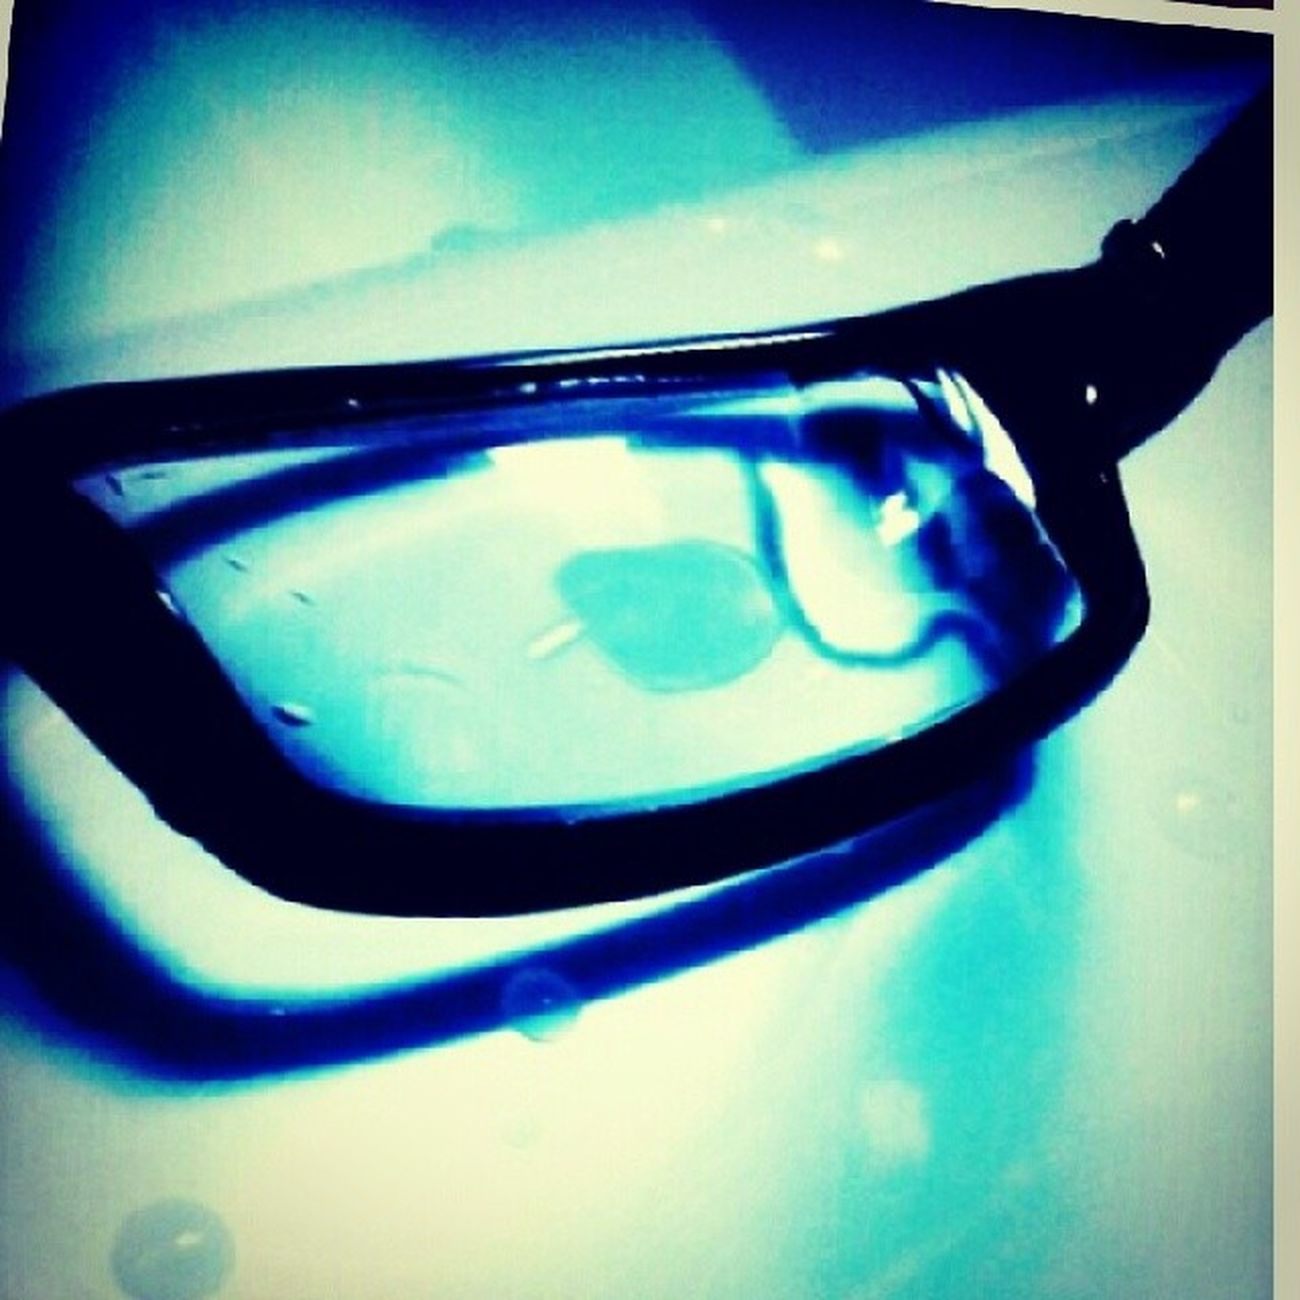 My glasses Photography Didit Myself Perfect artdifferentwaterblueinstainstameetfollow